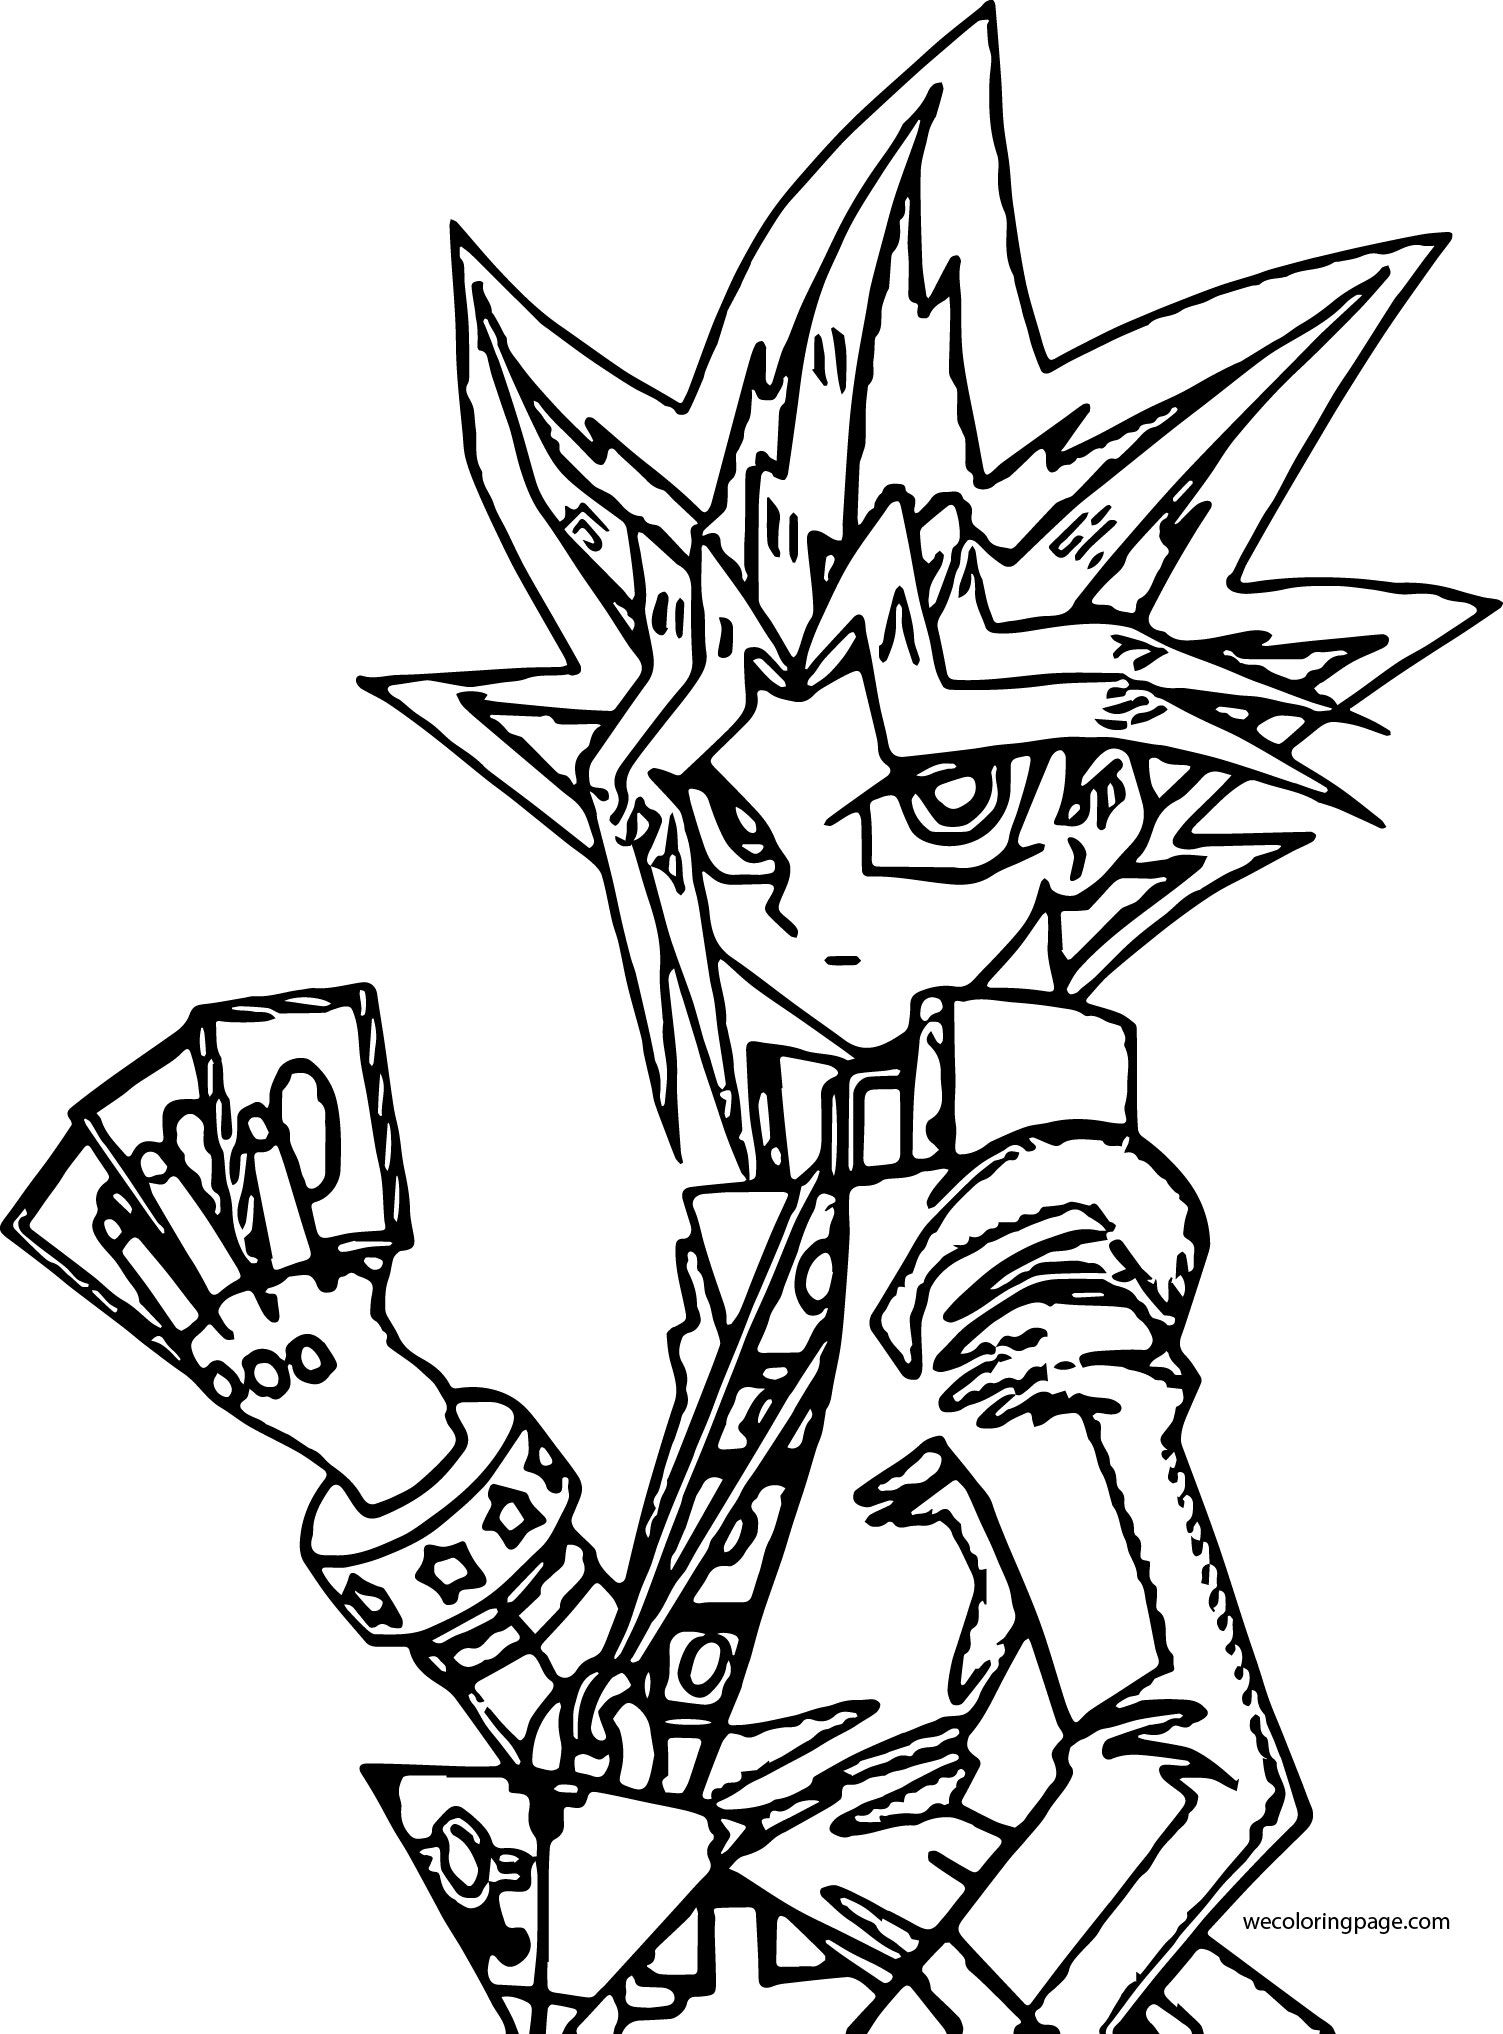 Yu Gi Oh Coloring Pages Monster Coloring Pages Coloring Pages